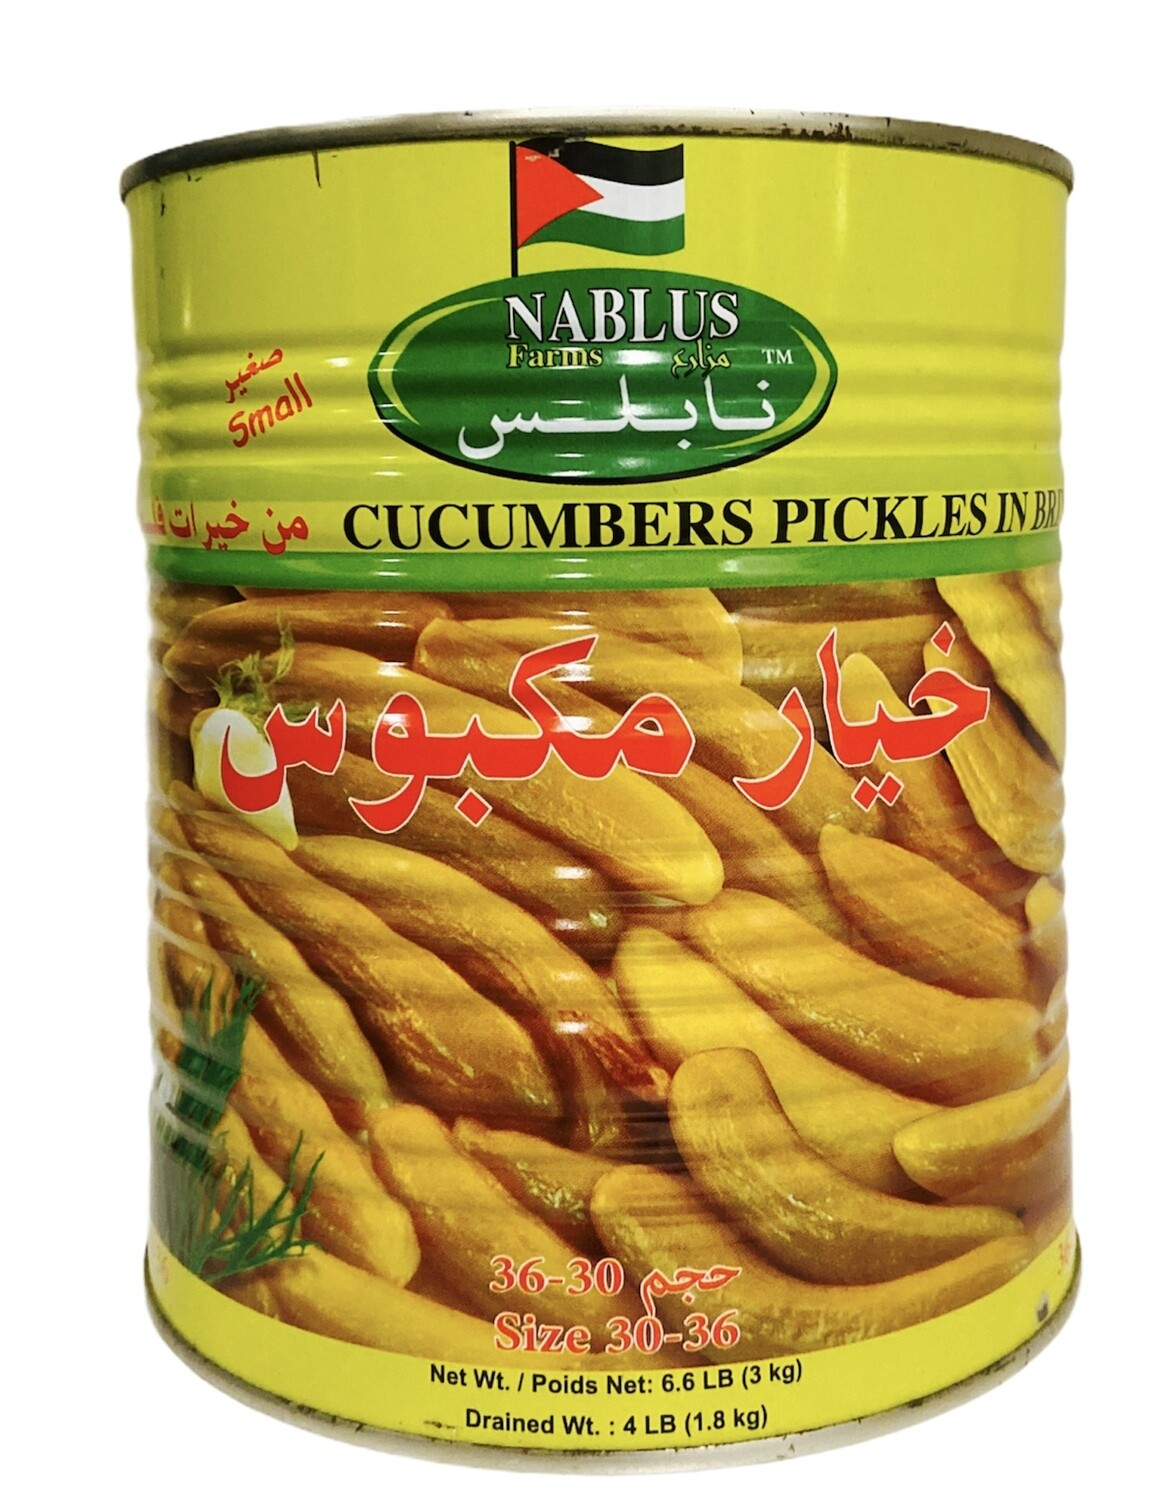 Nablus Pickled Cucumbers Count 30/36 6x6lb